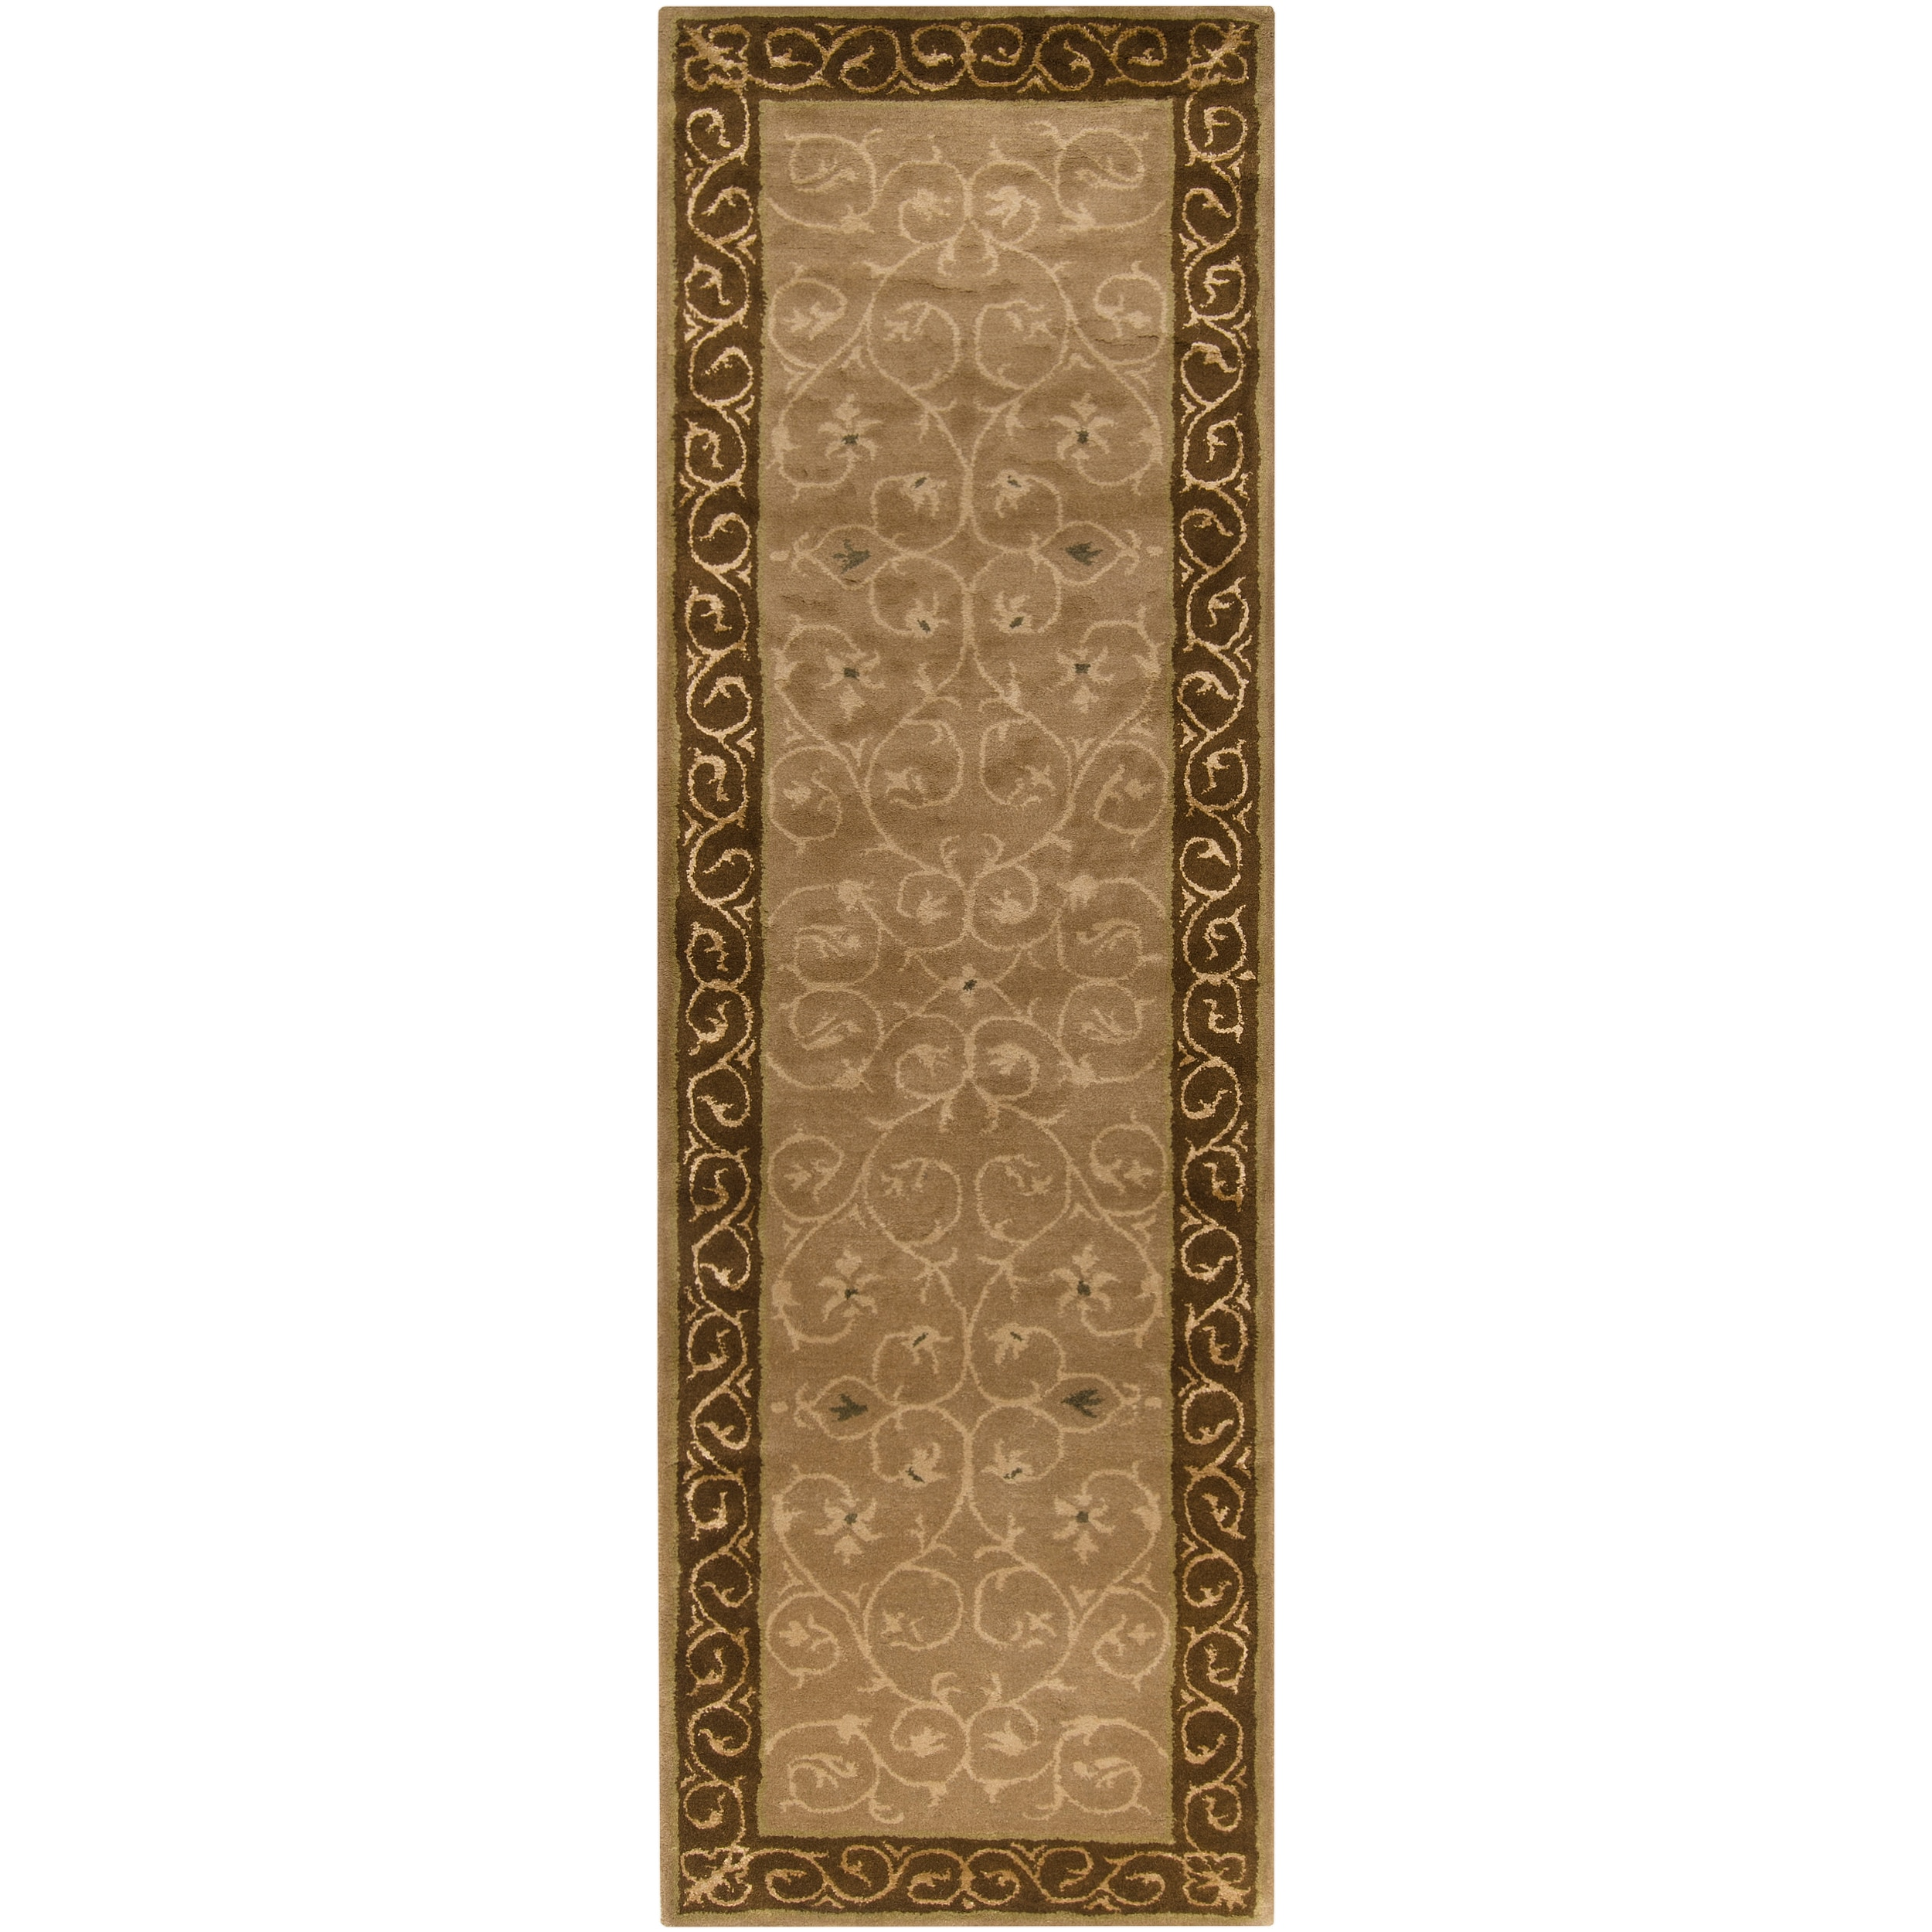 Hand-tufted Brown Sarie Wool Rug (3' x 12')